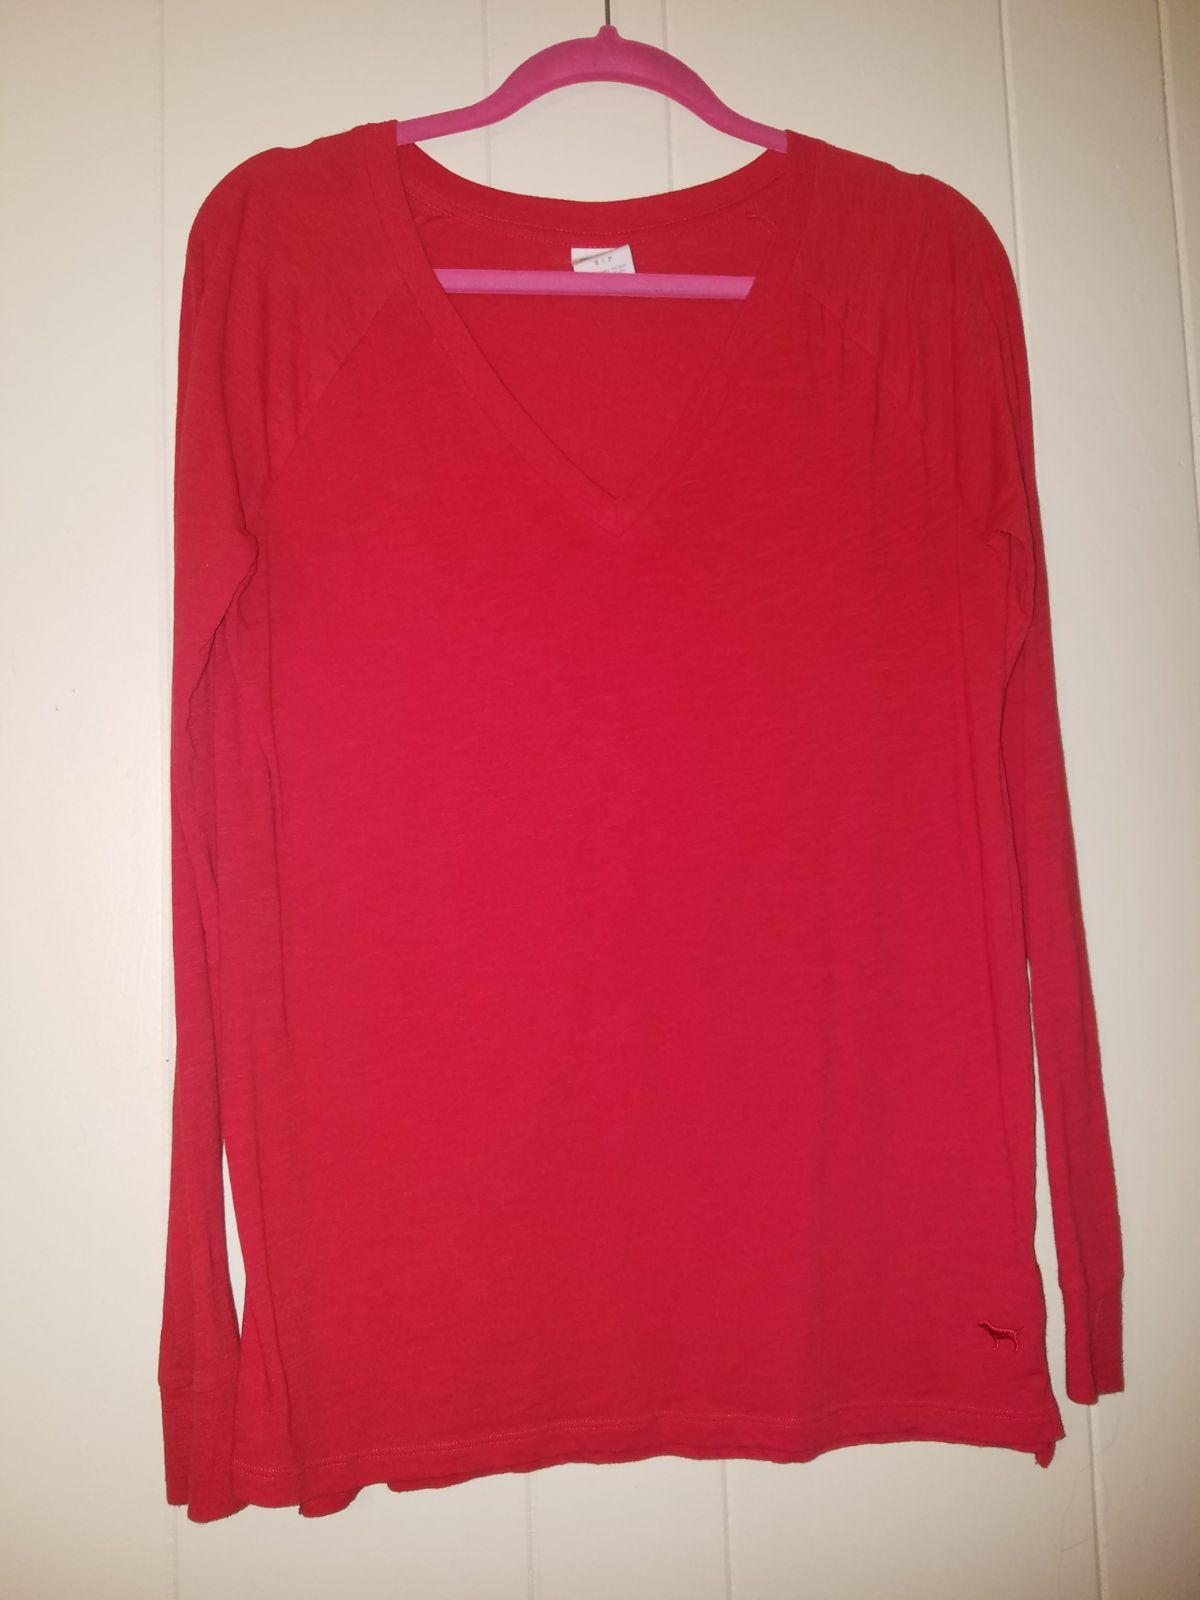 S VS PINK red vneck long sleeve - Mercari: BUY & SELL THINGS YOU LOVE